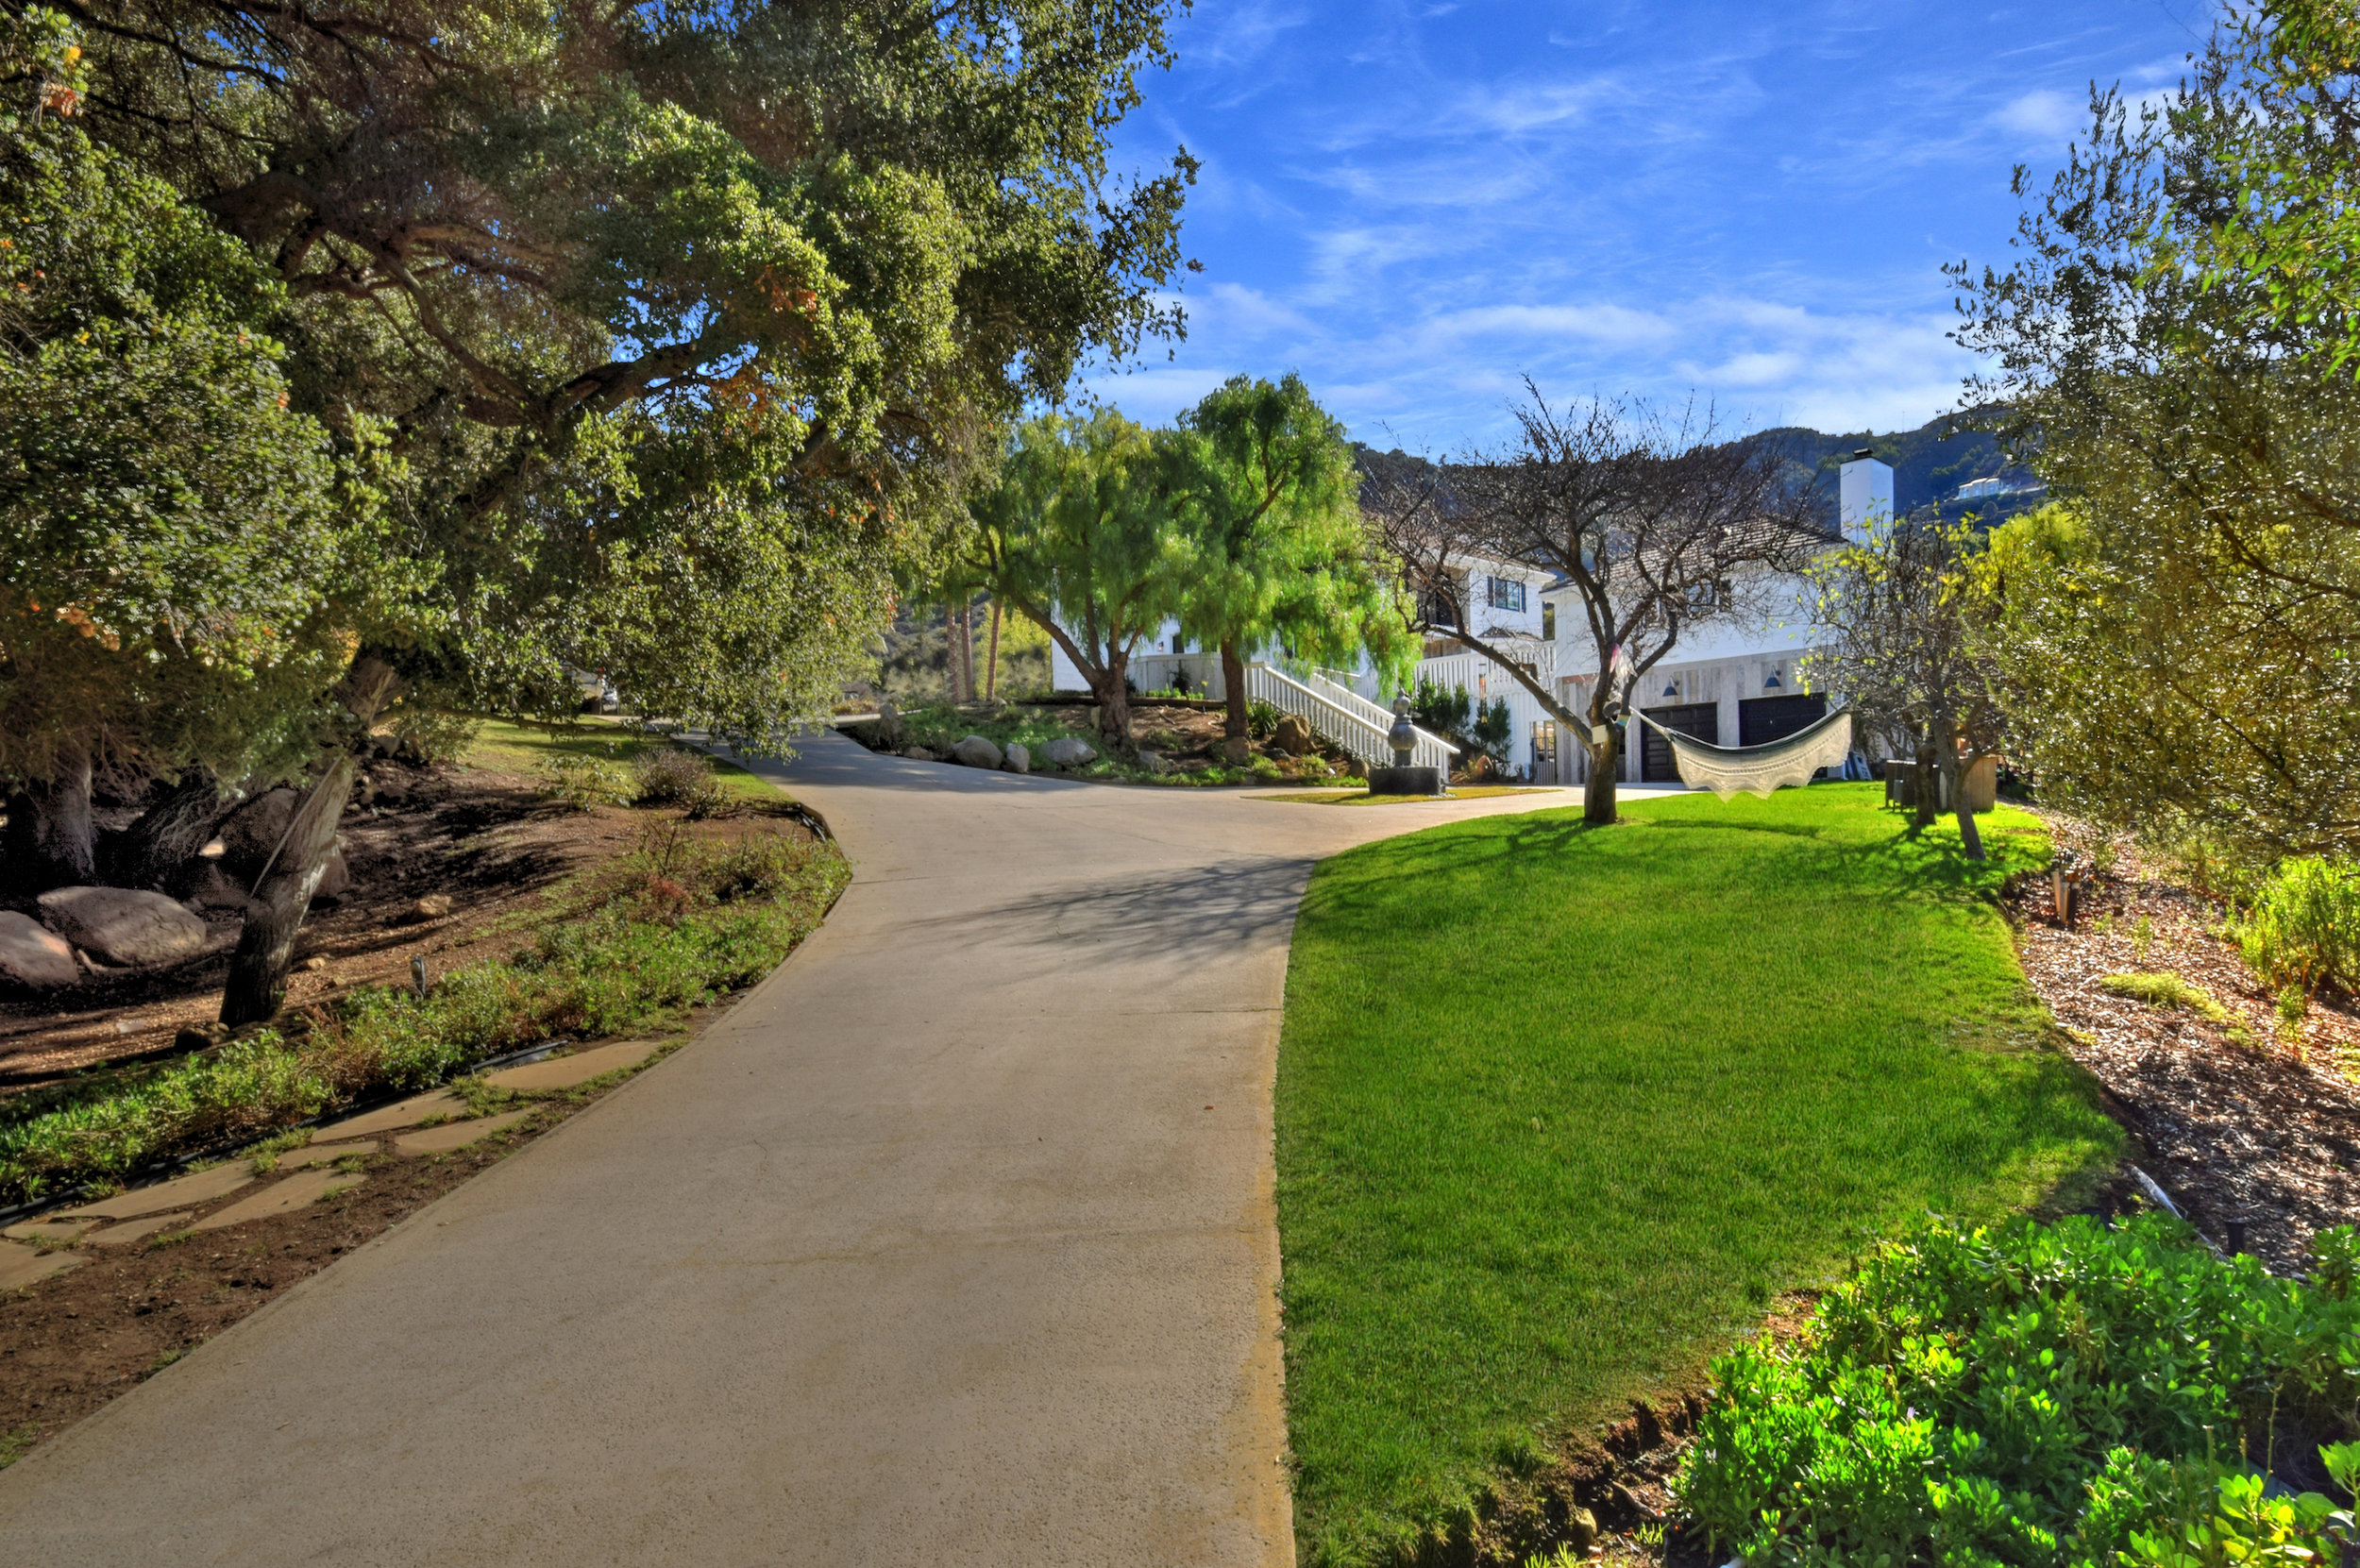 009 Driveway 560 Cold Canyon Road For Sale Lease The Malibu Life Team Luxury Real Estate.jpg